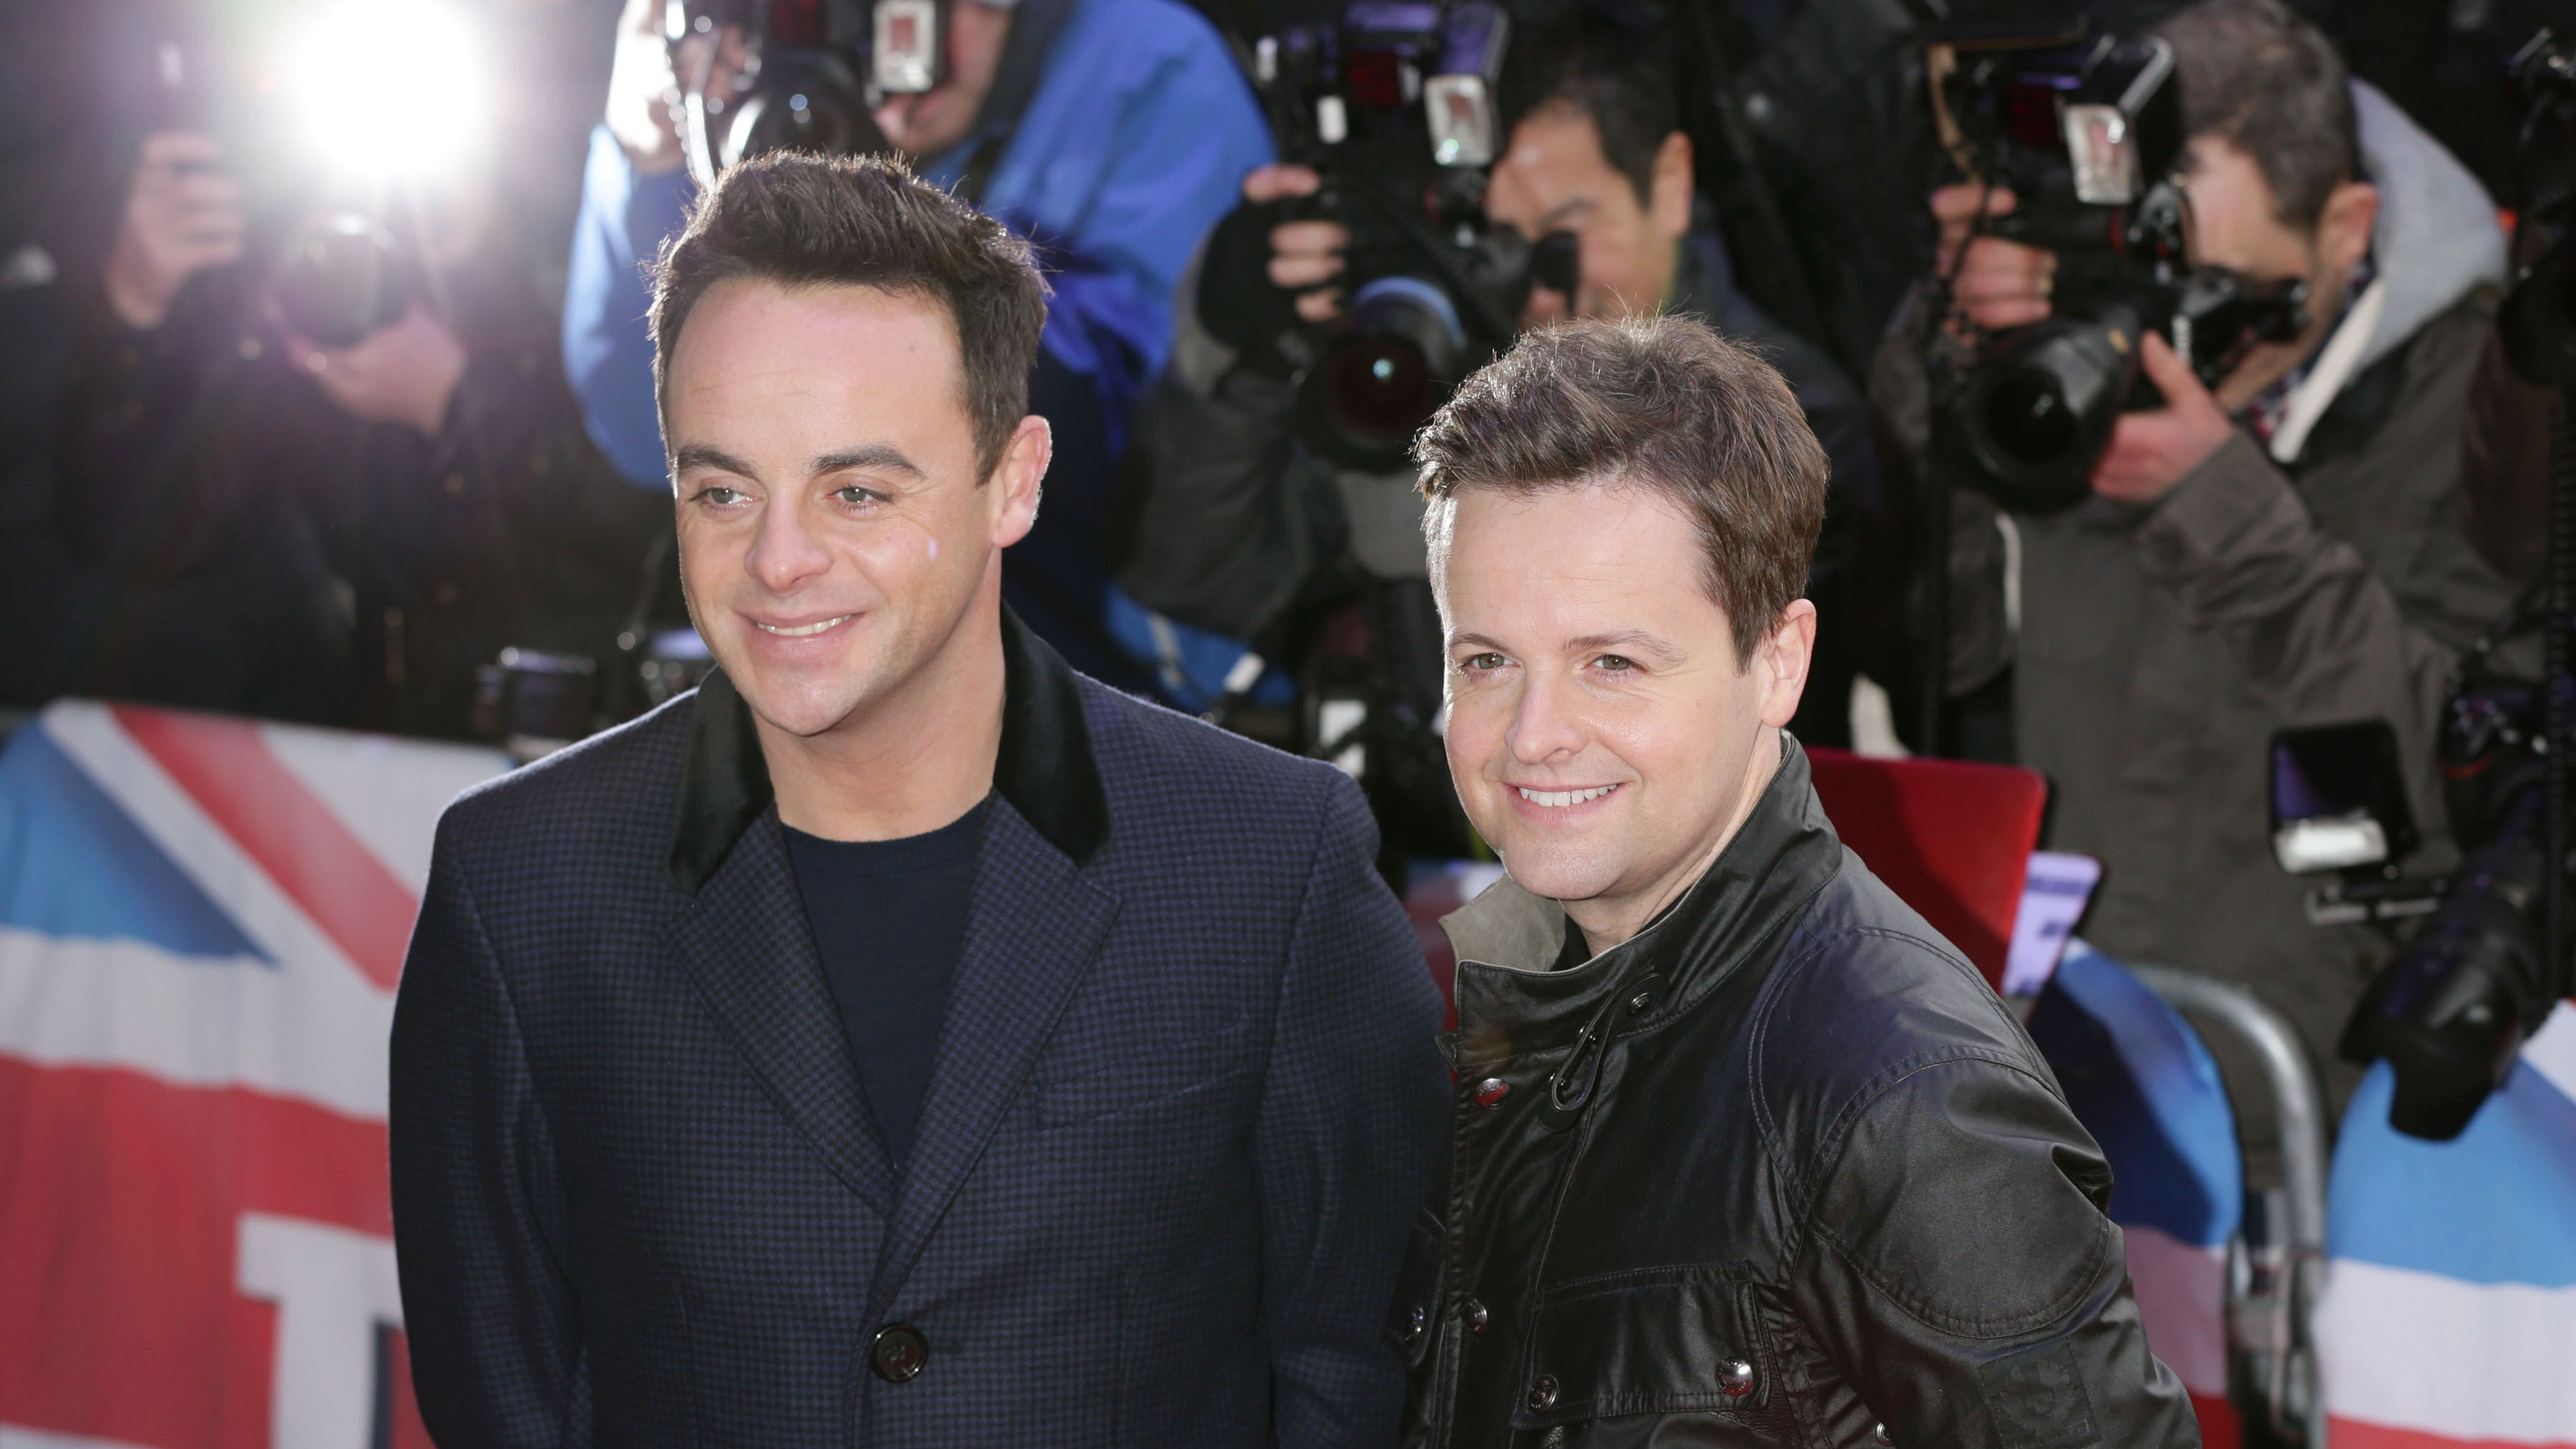 Dec wins praise for hosting solo as two acts make BGT final